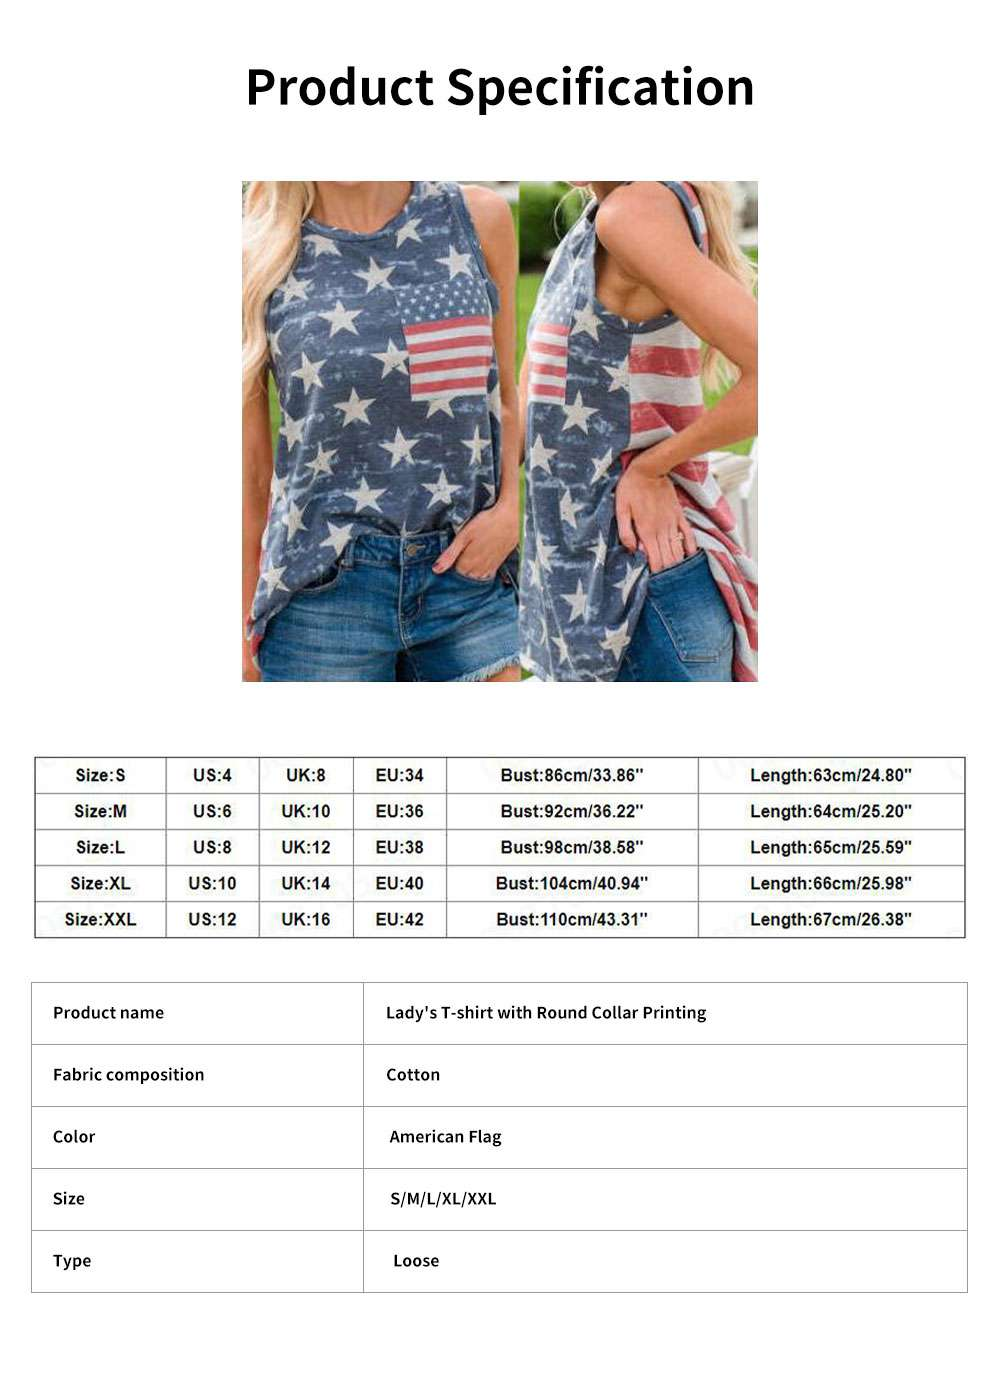 Lady's T-shirt with Round Collar Printing Sleeveless American Independence Day Printing T Shirt 6